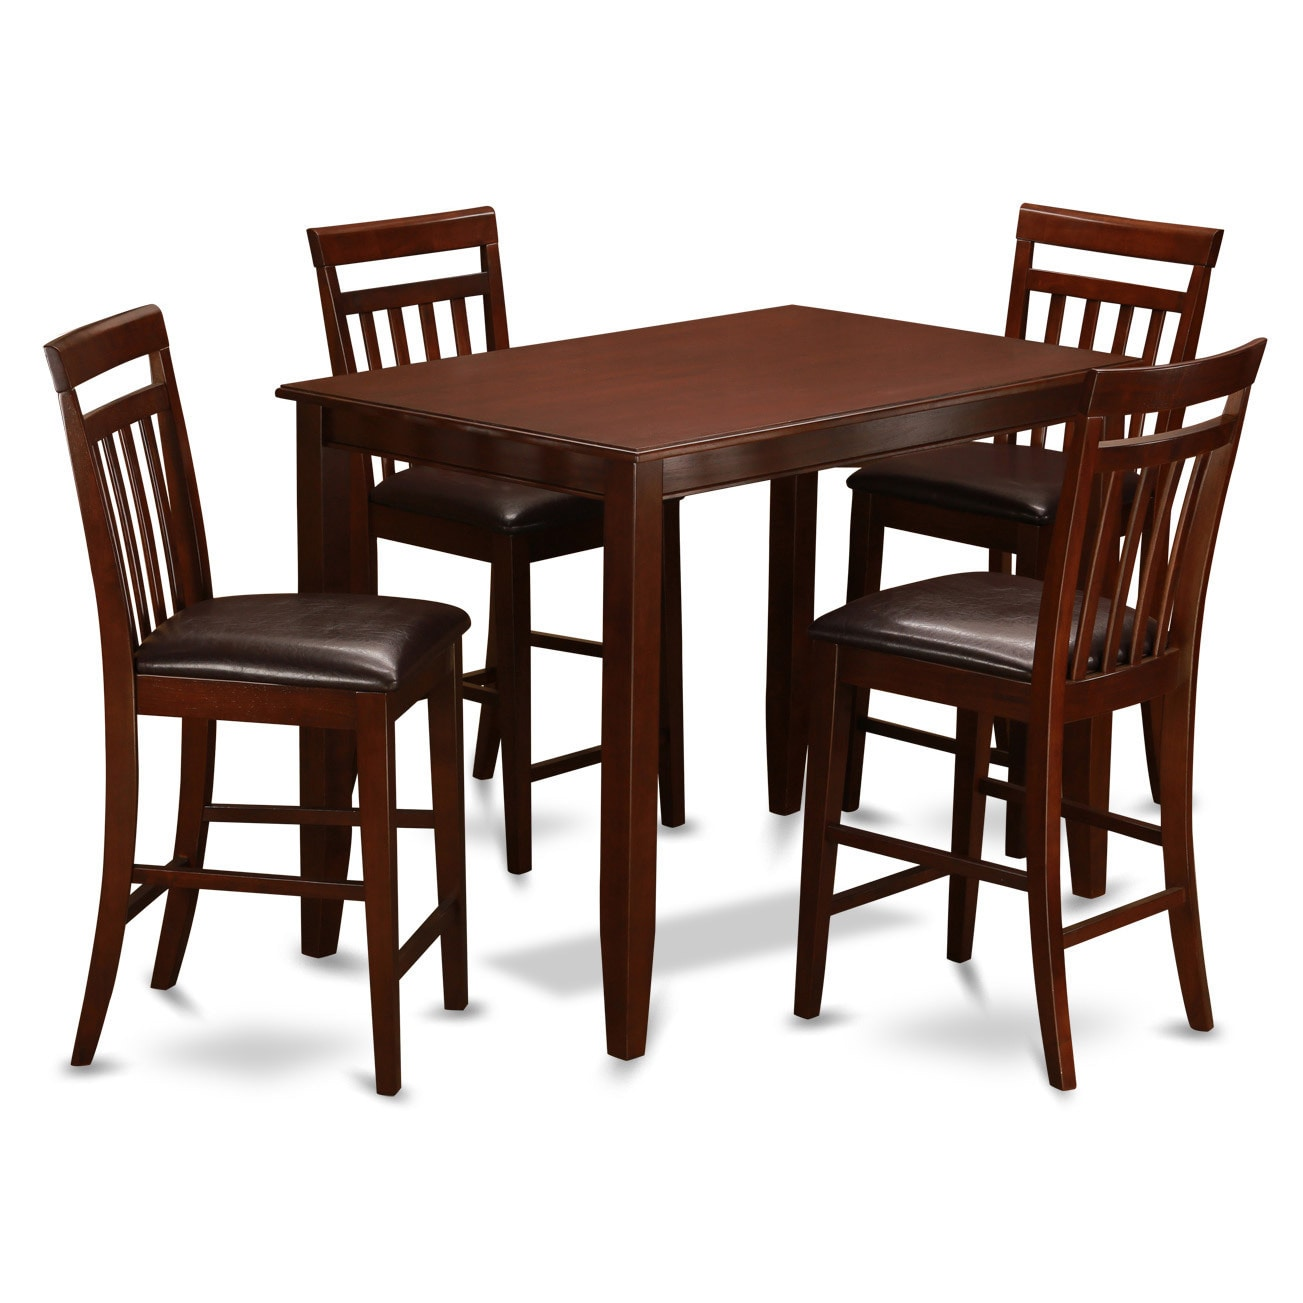 Mahogany Dining Room Furniture: 84 Inch Dining Table Rustic Wood Dining Room Set In Dark